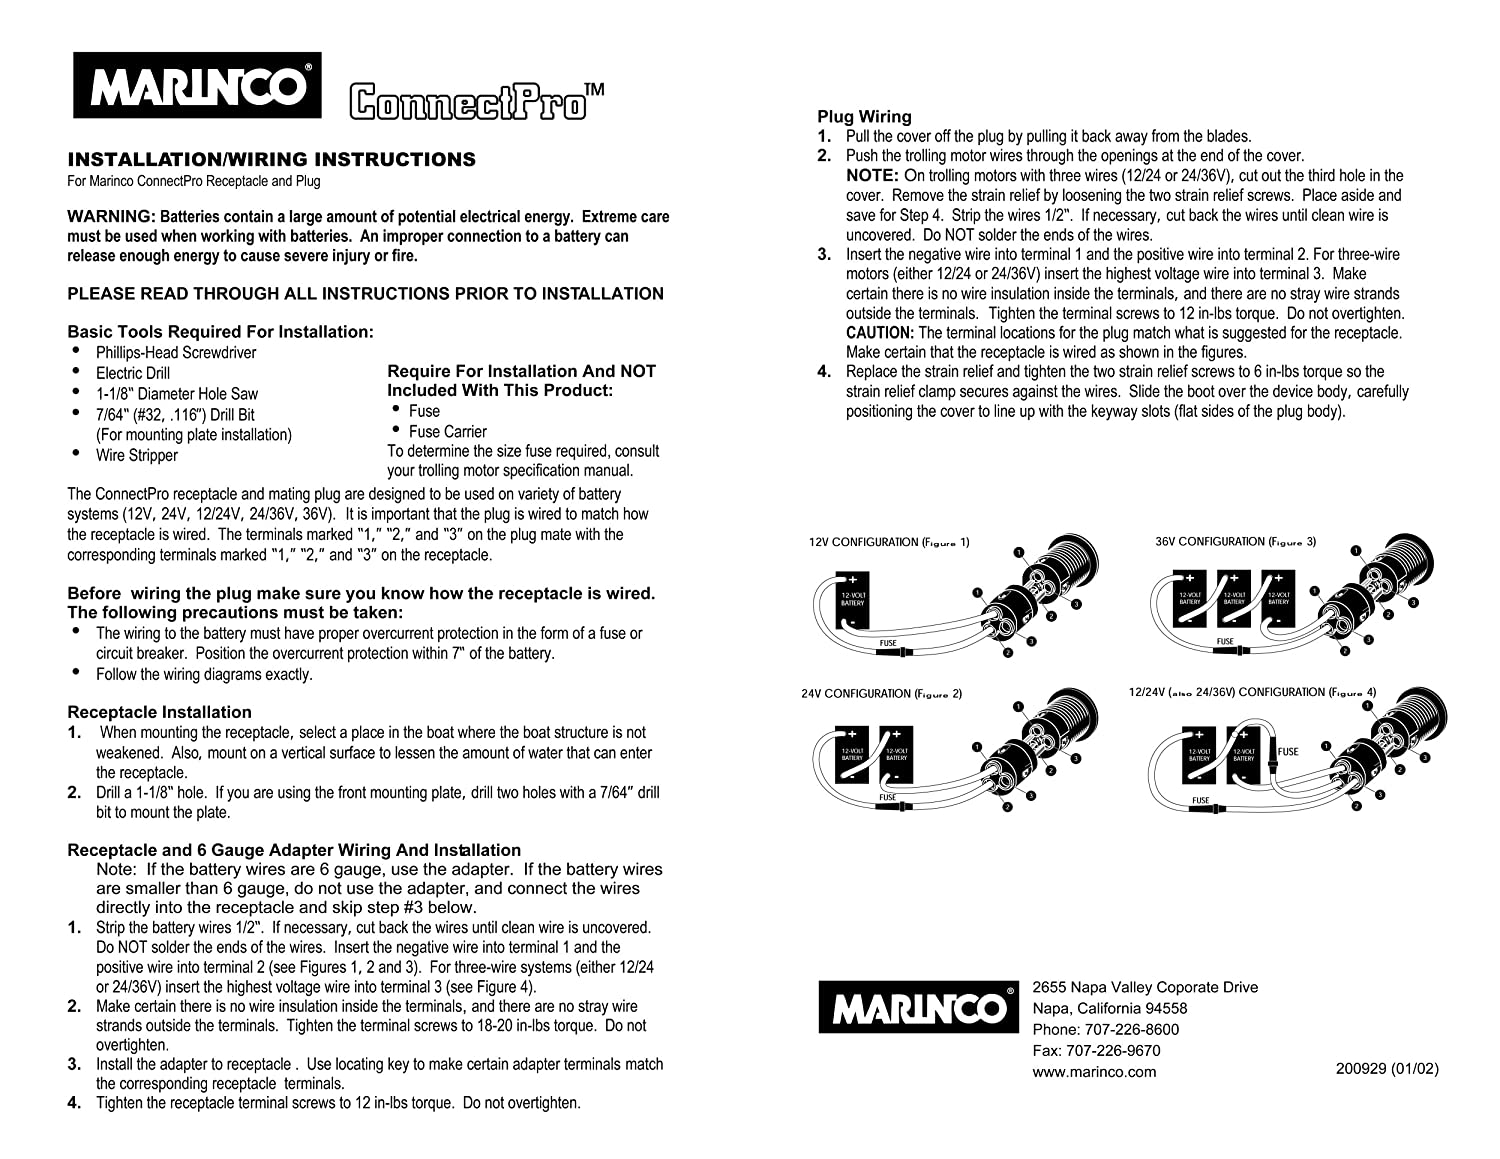 91ULQH2Yk6S._SL1500_ amazon com marinco 2 wire connectpro plug sports & outdoors marinco plug wiring diagram at readyjetset.co